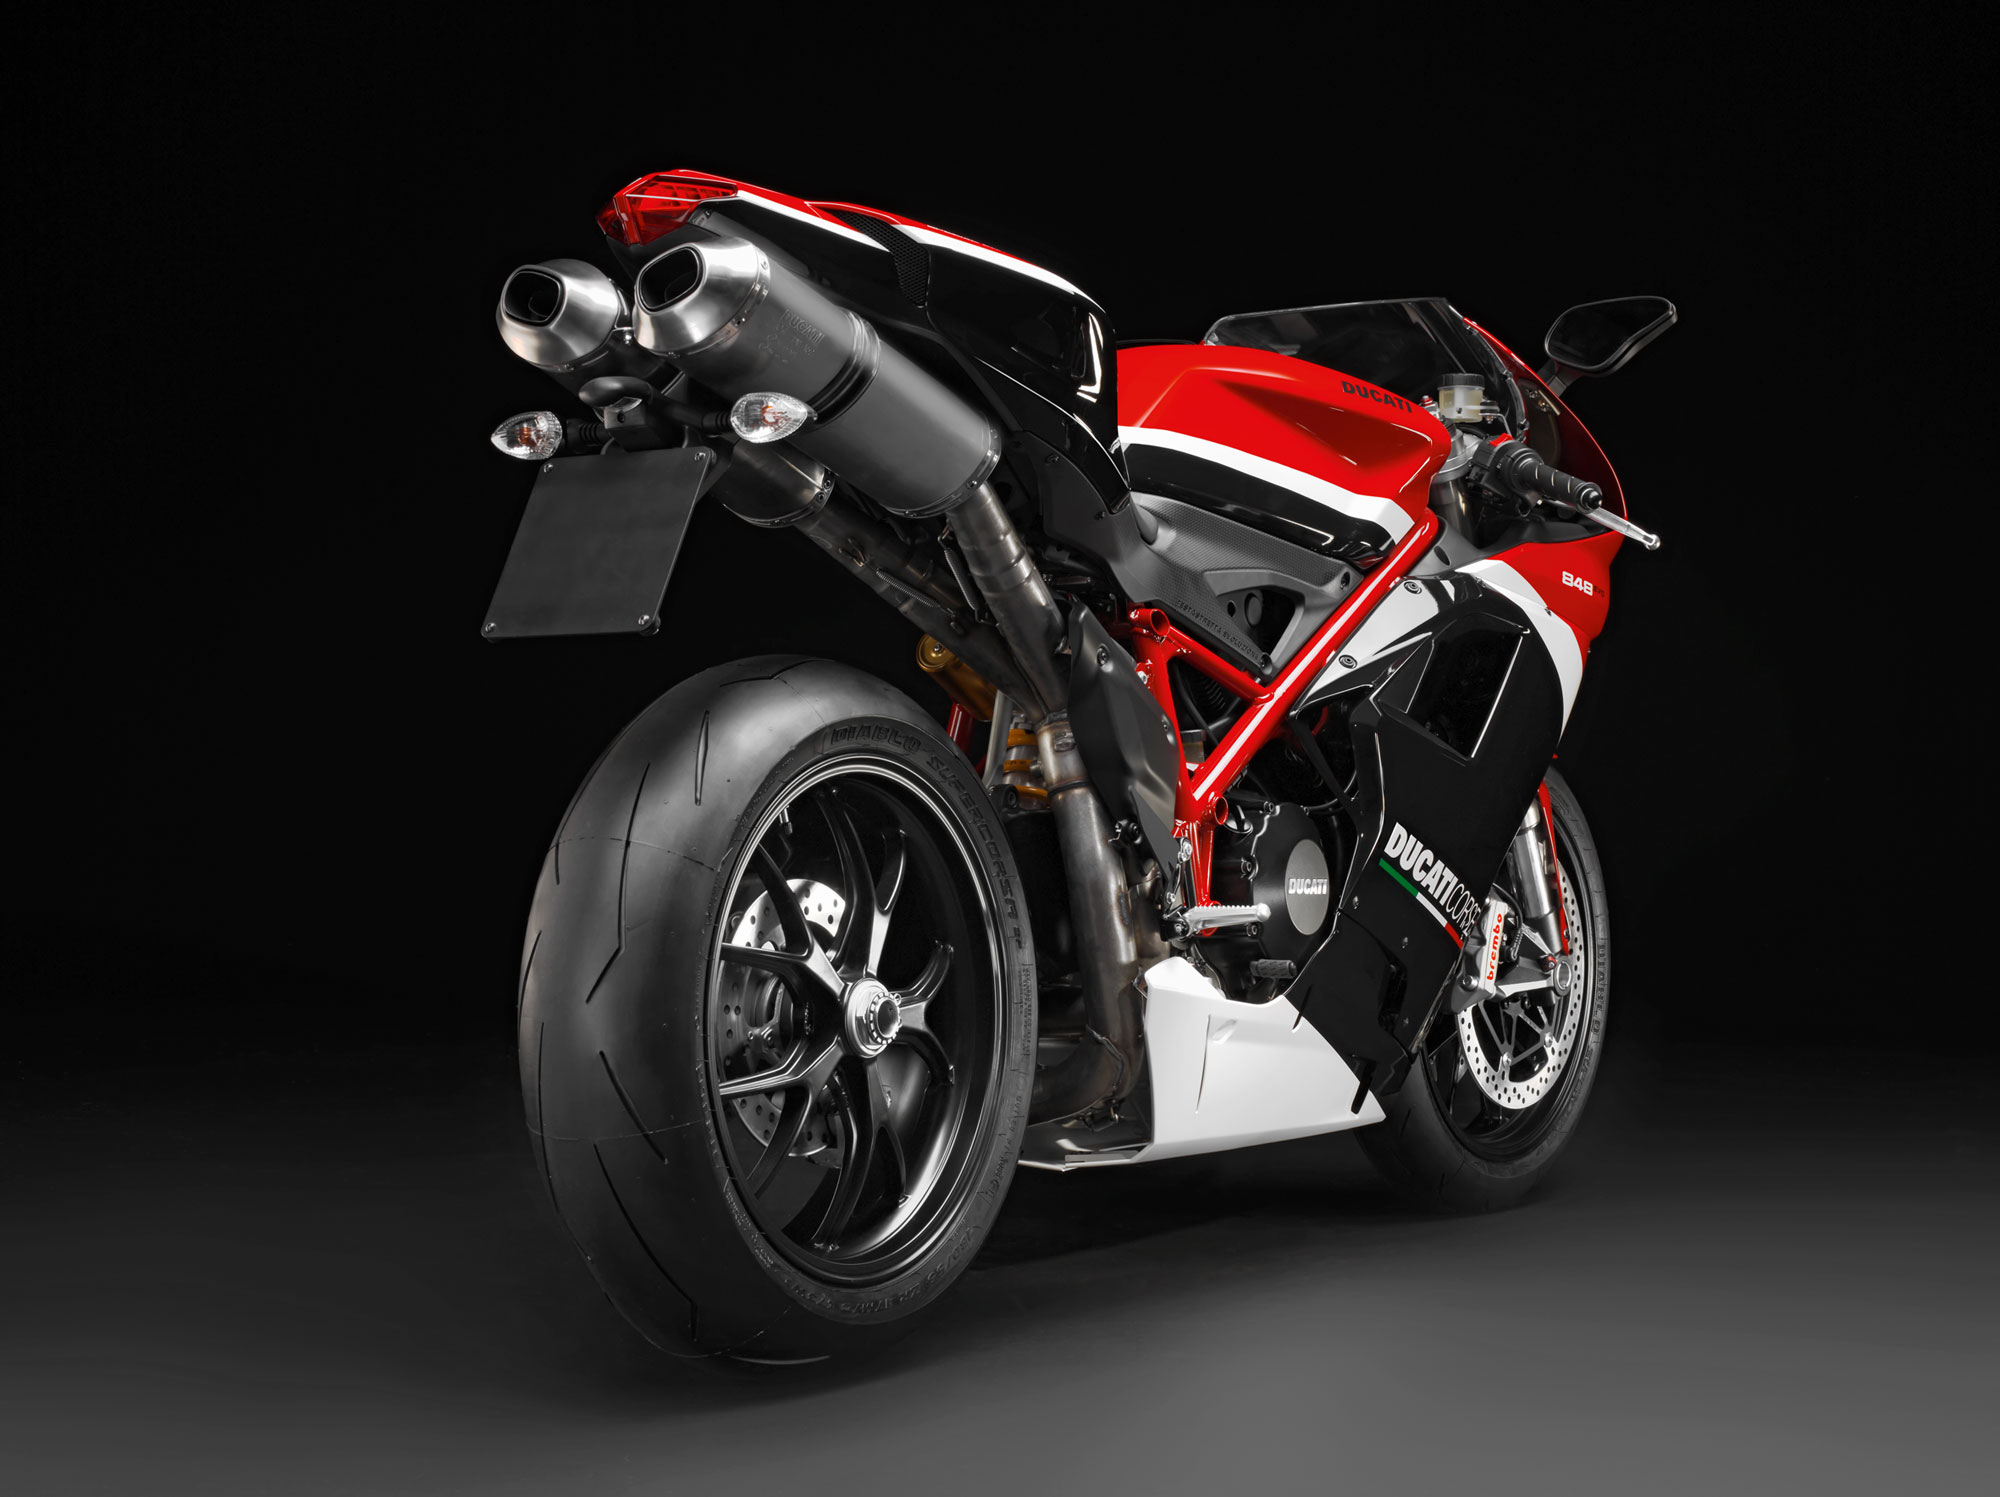 Groovy 2012 Ducati 848 Evo Corse Se Review Pabps2019 Chair Design Images Pabps2019Com